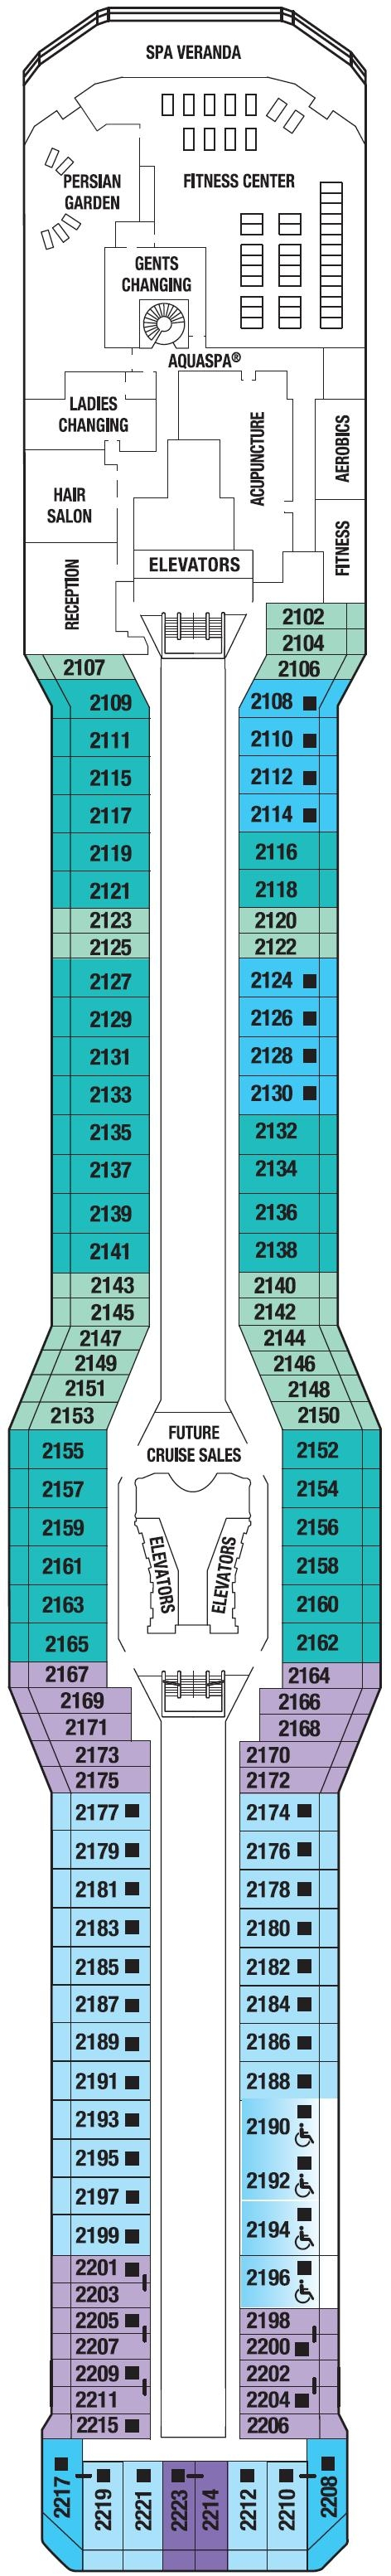 Symphony of the Seas Deck 11 Deck Plan Tour